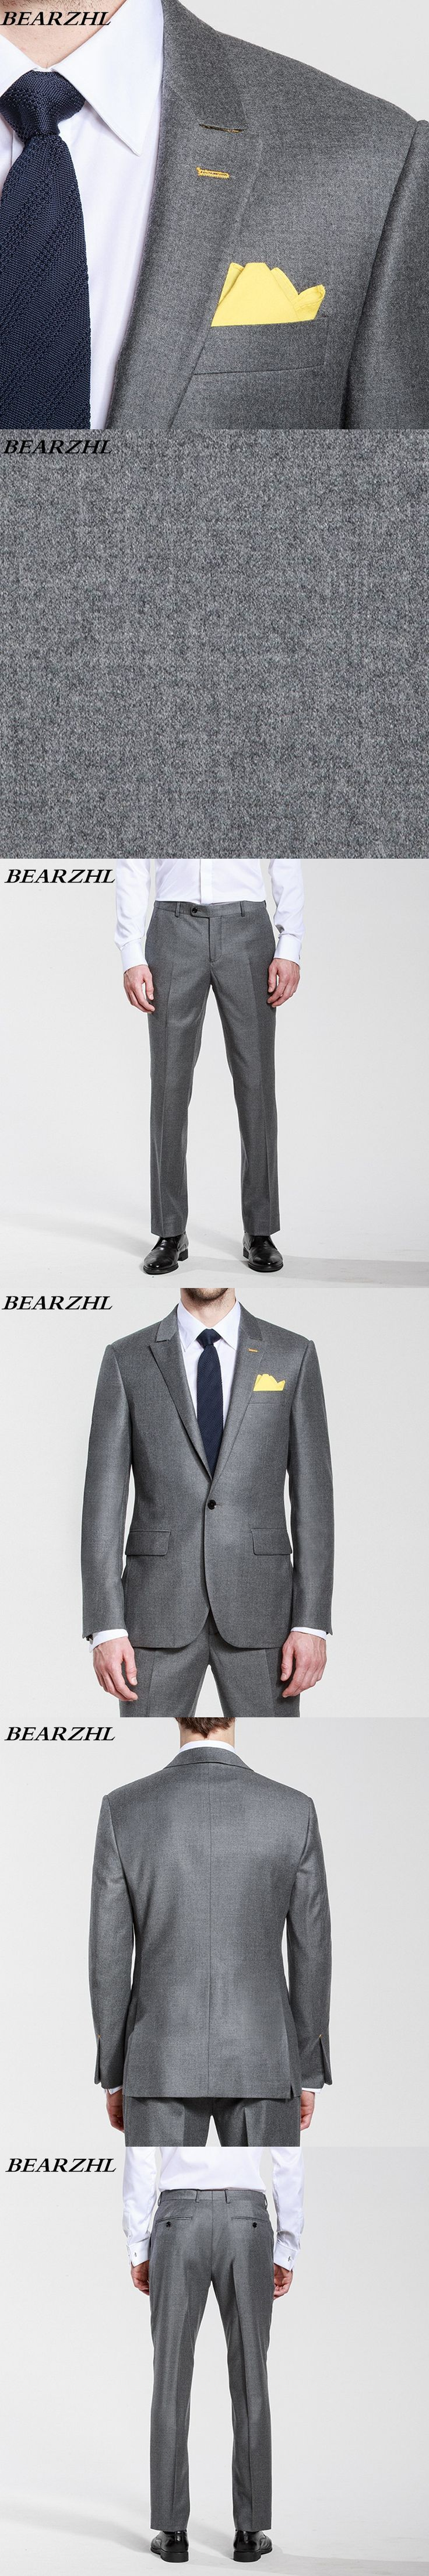 men suits charcoal gray custom made suit slim fit tuxedo for wedding one button suit high quality 2017